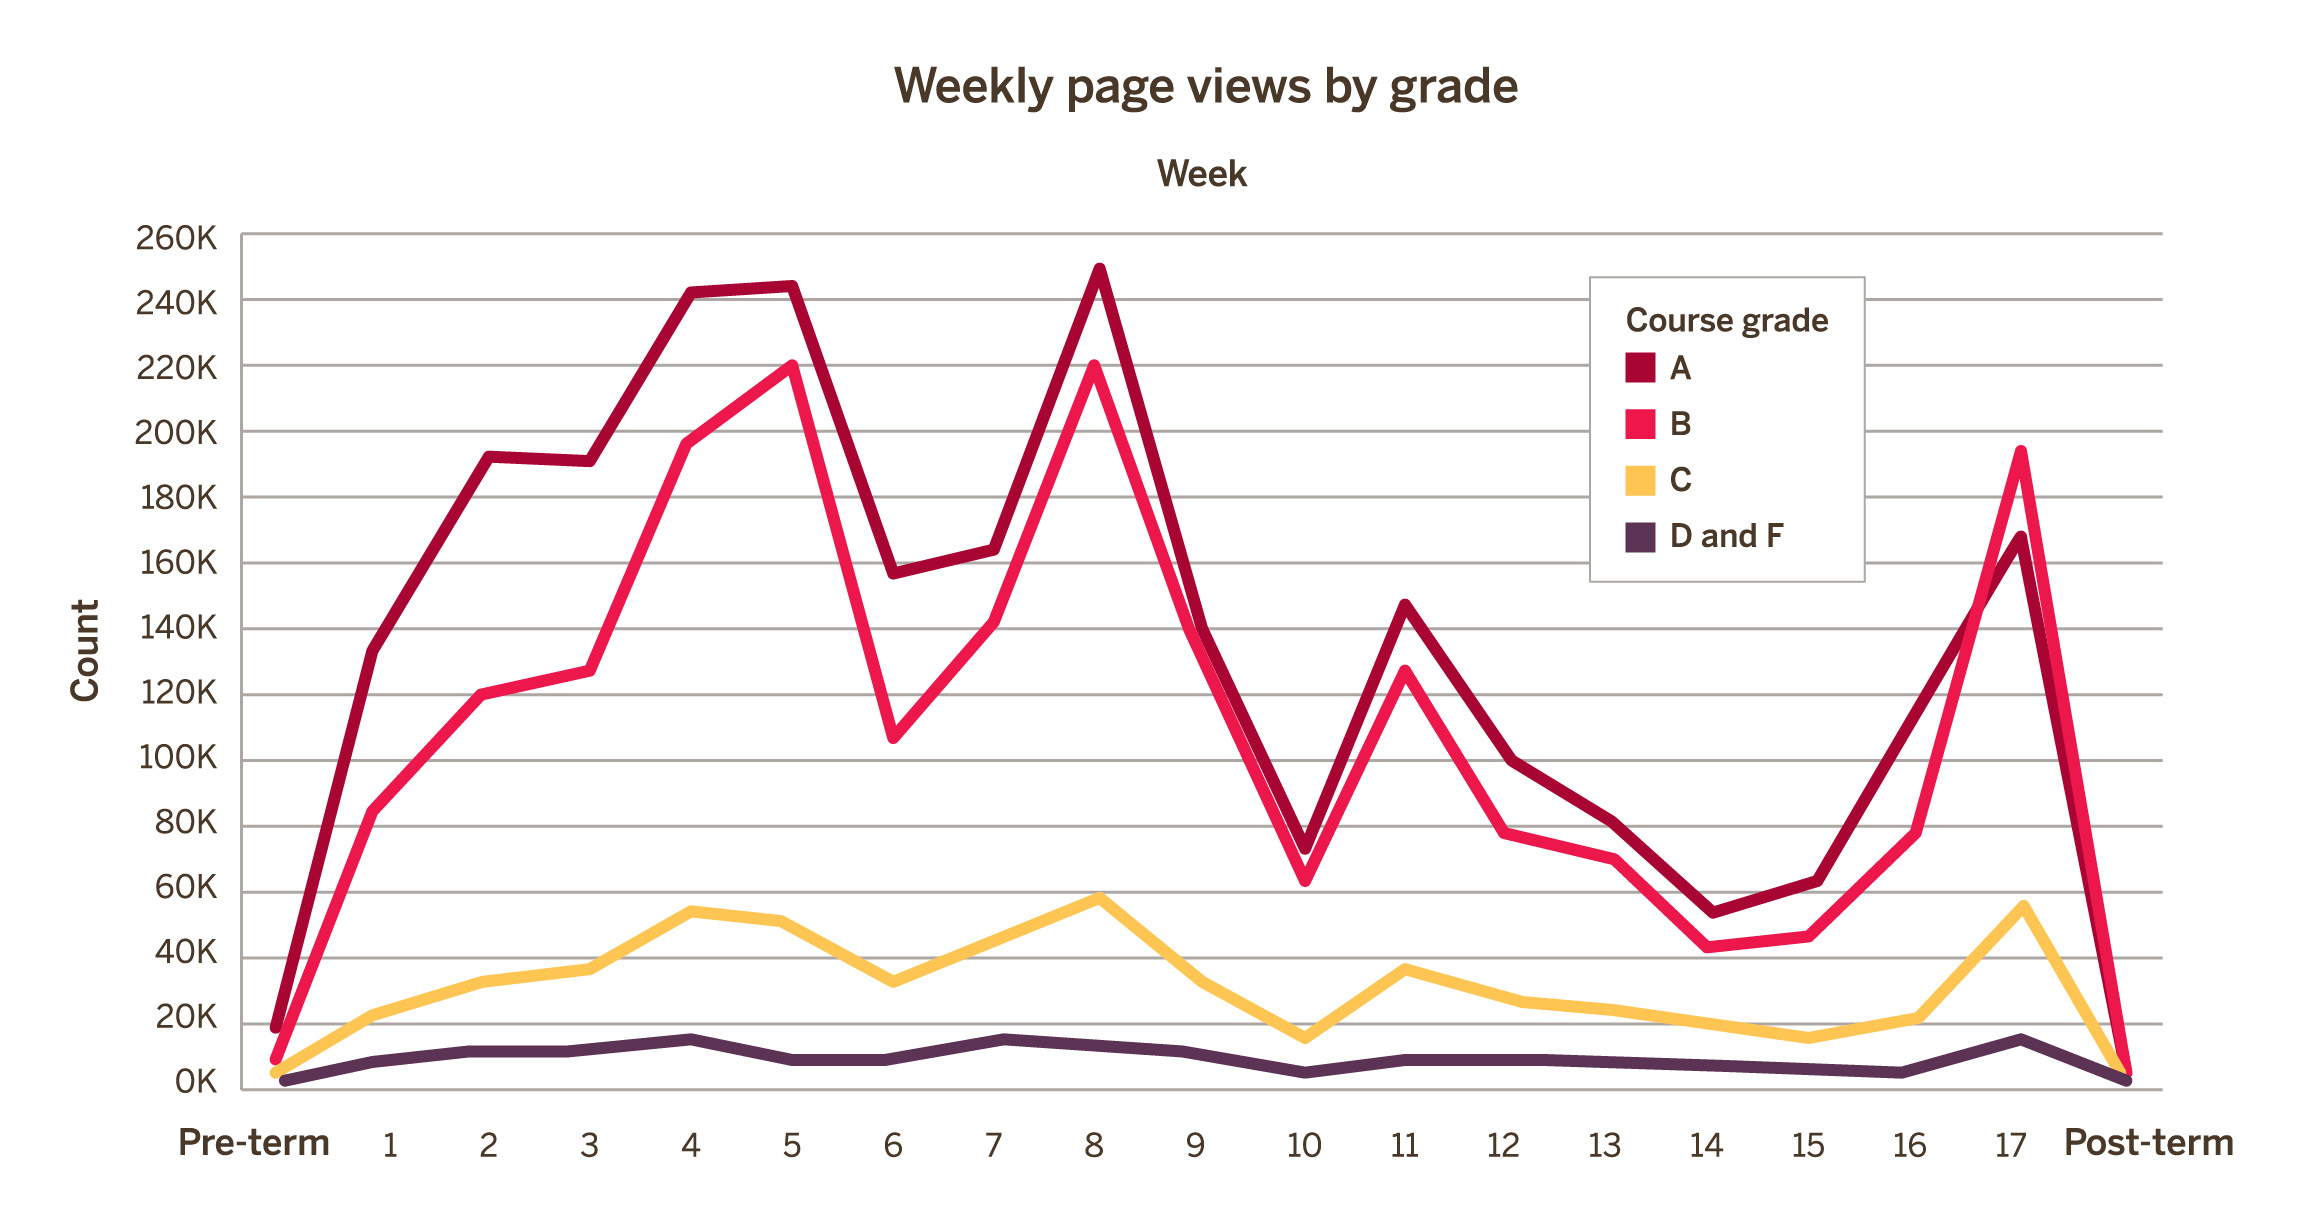 Weekly page views by grade